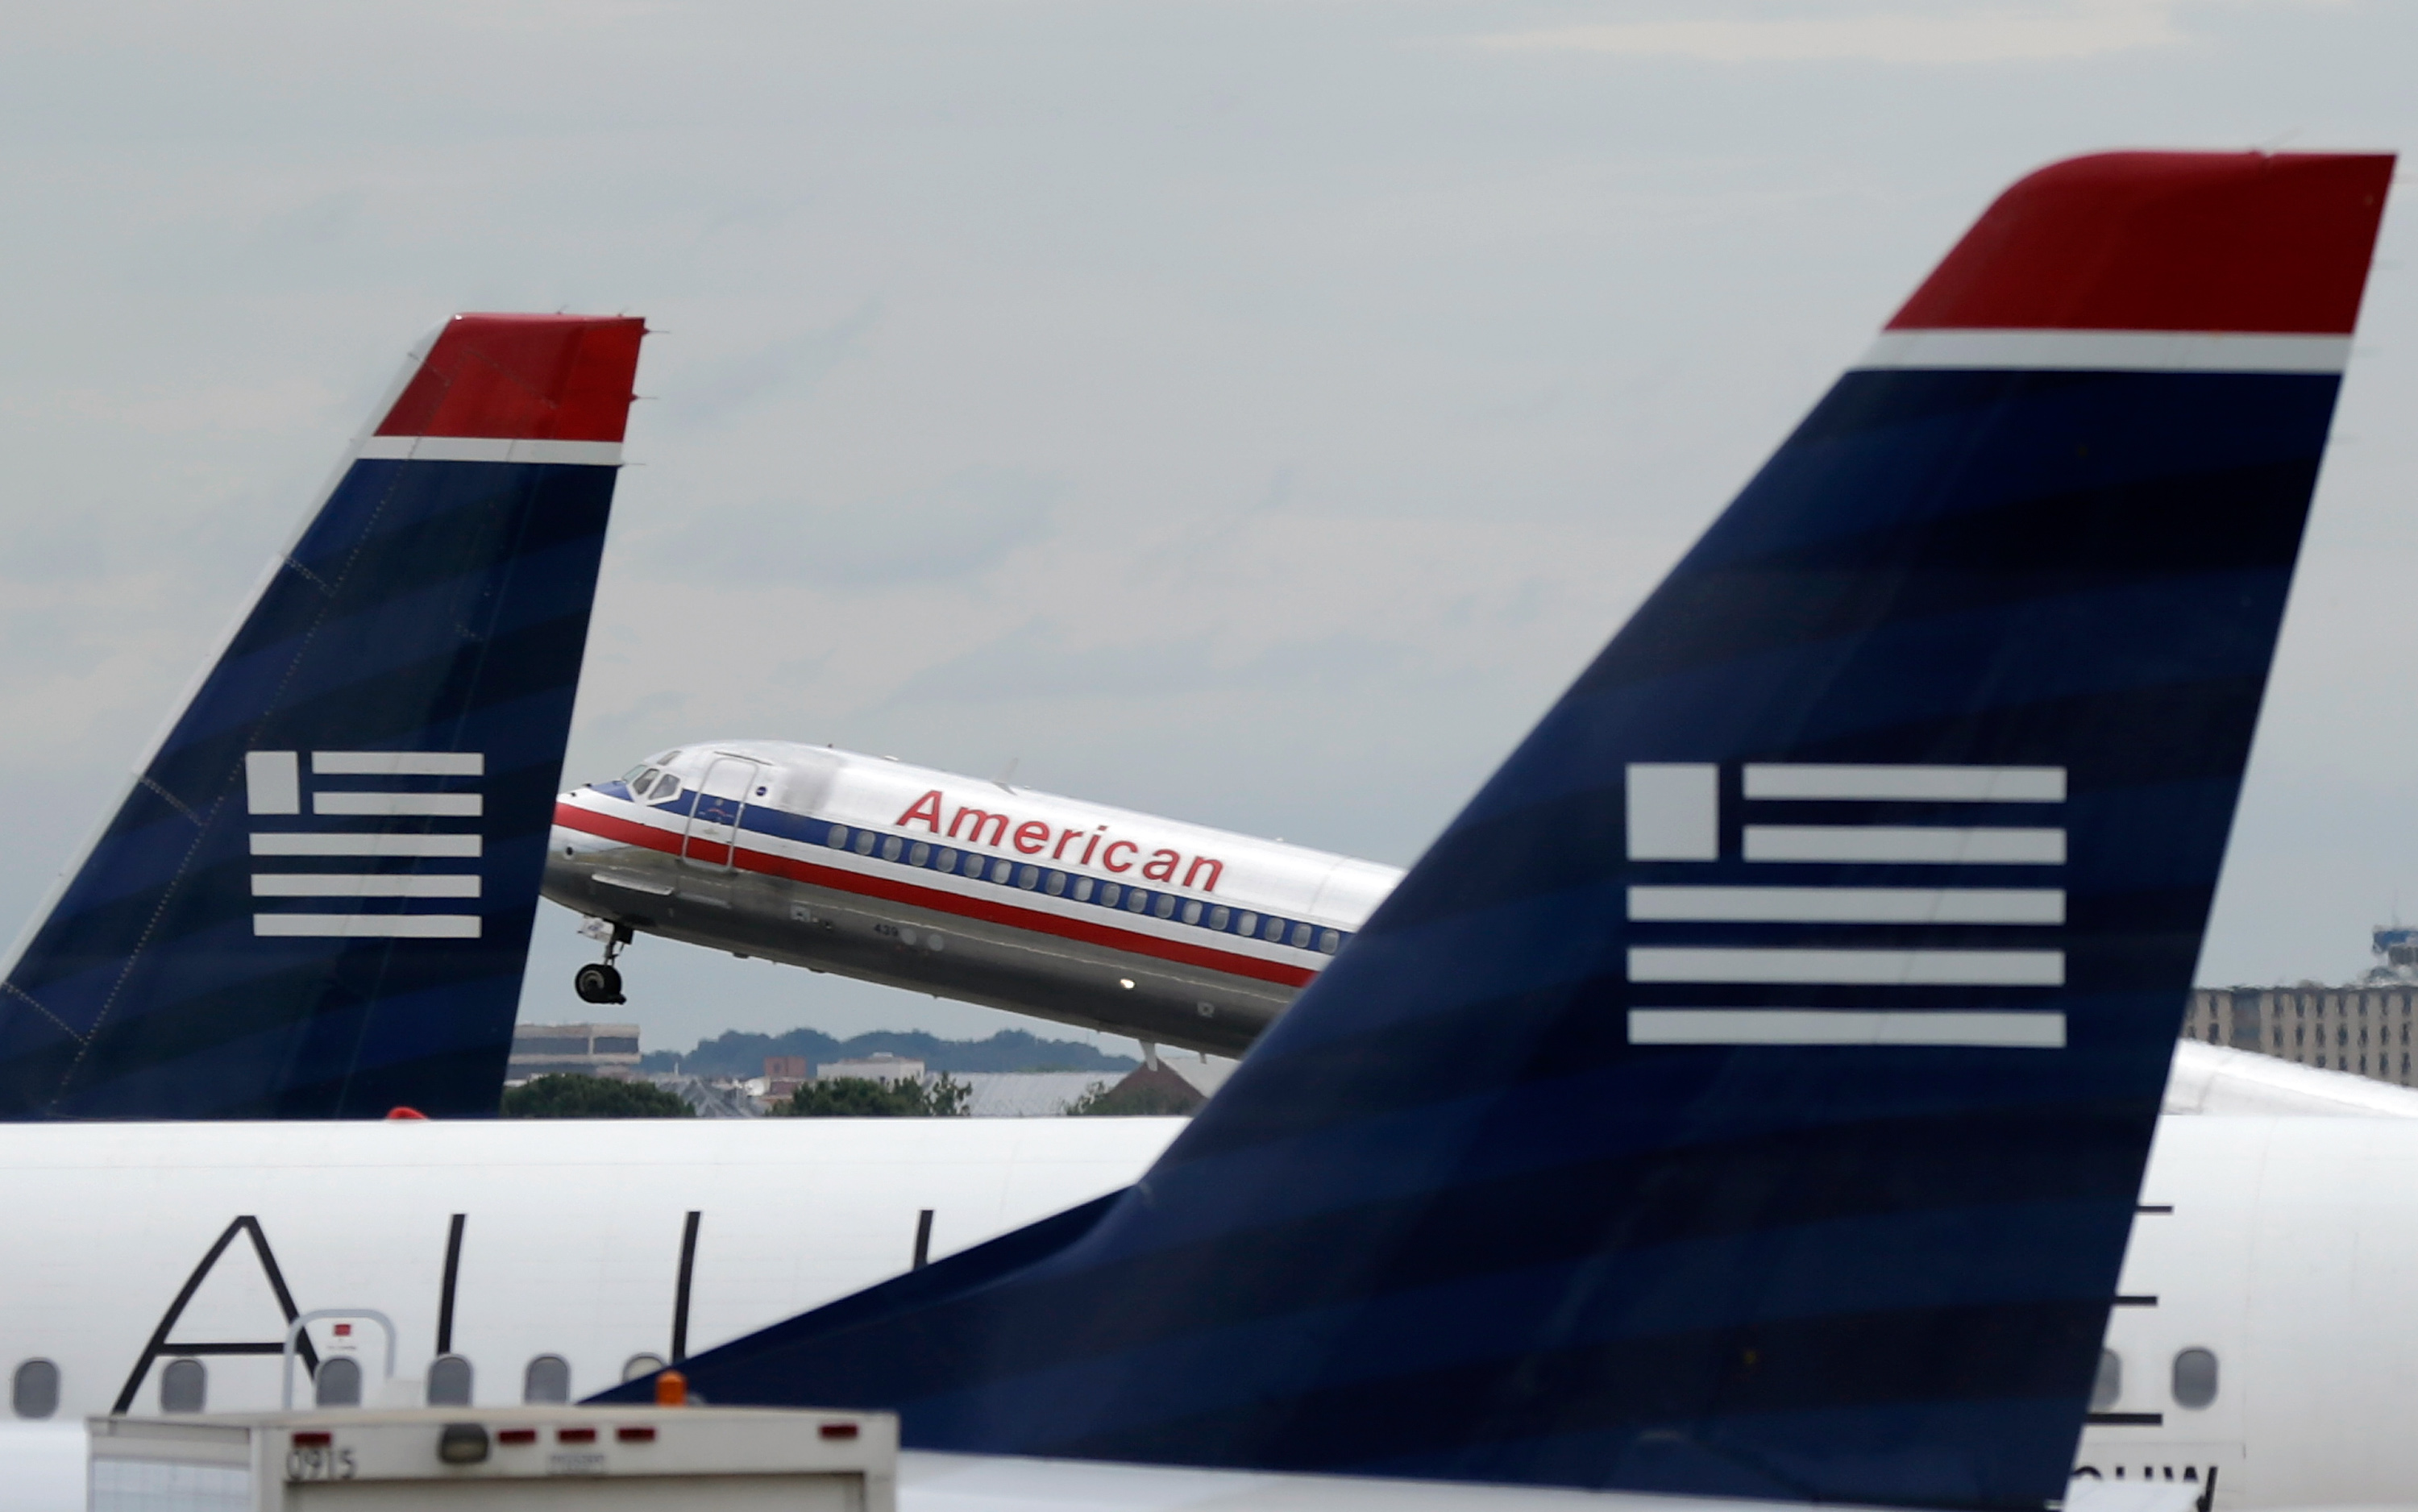 An American Airlines jet takes off behind US Airways jets at Ronald Reagan Washington National Airport August 13, 2013 in Arlington, Virginia.